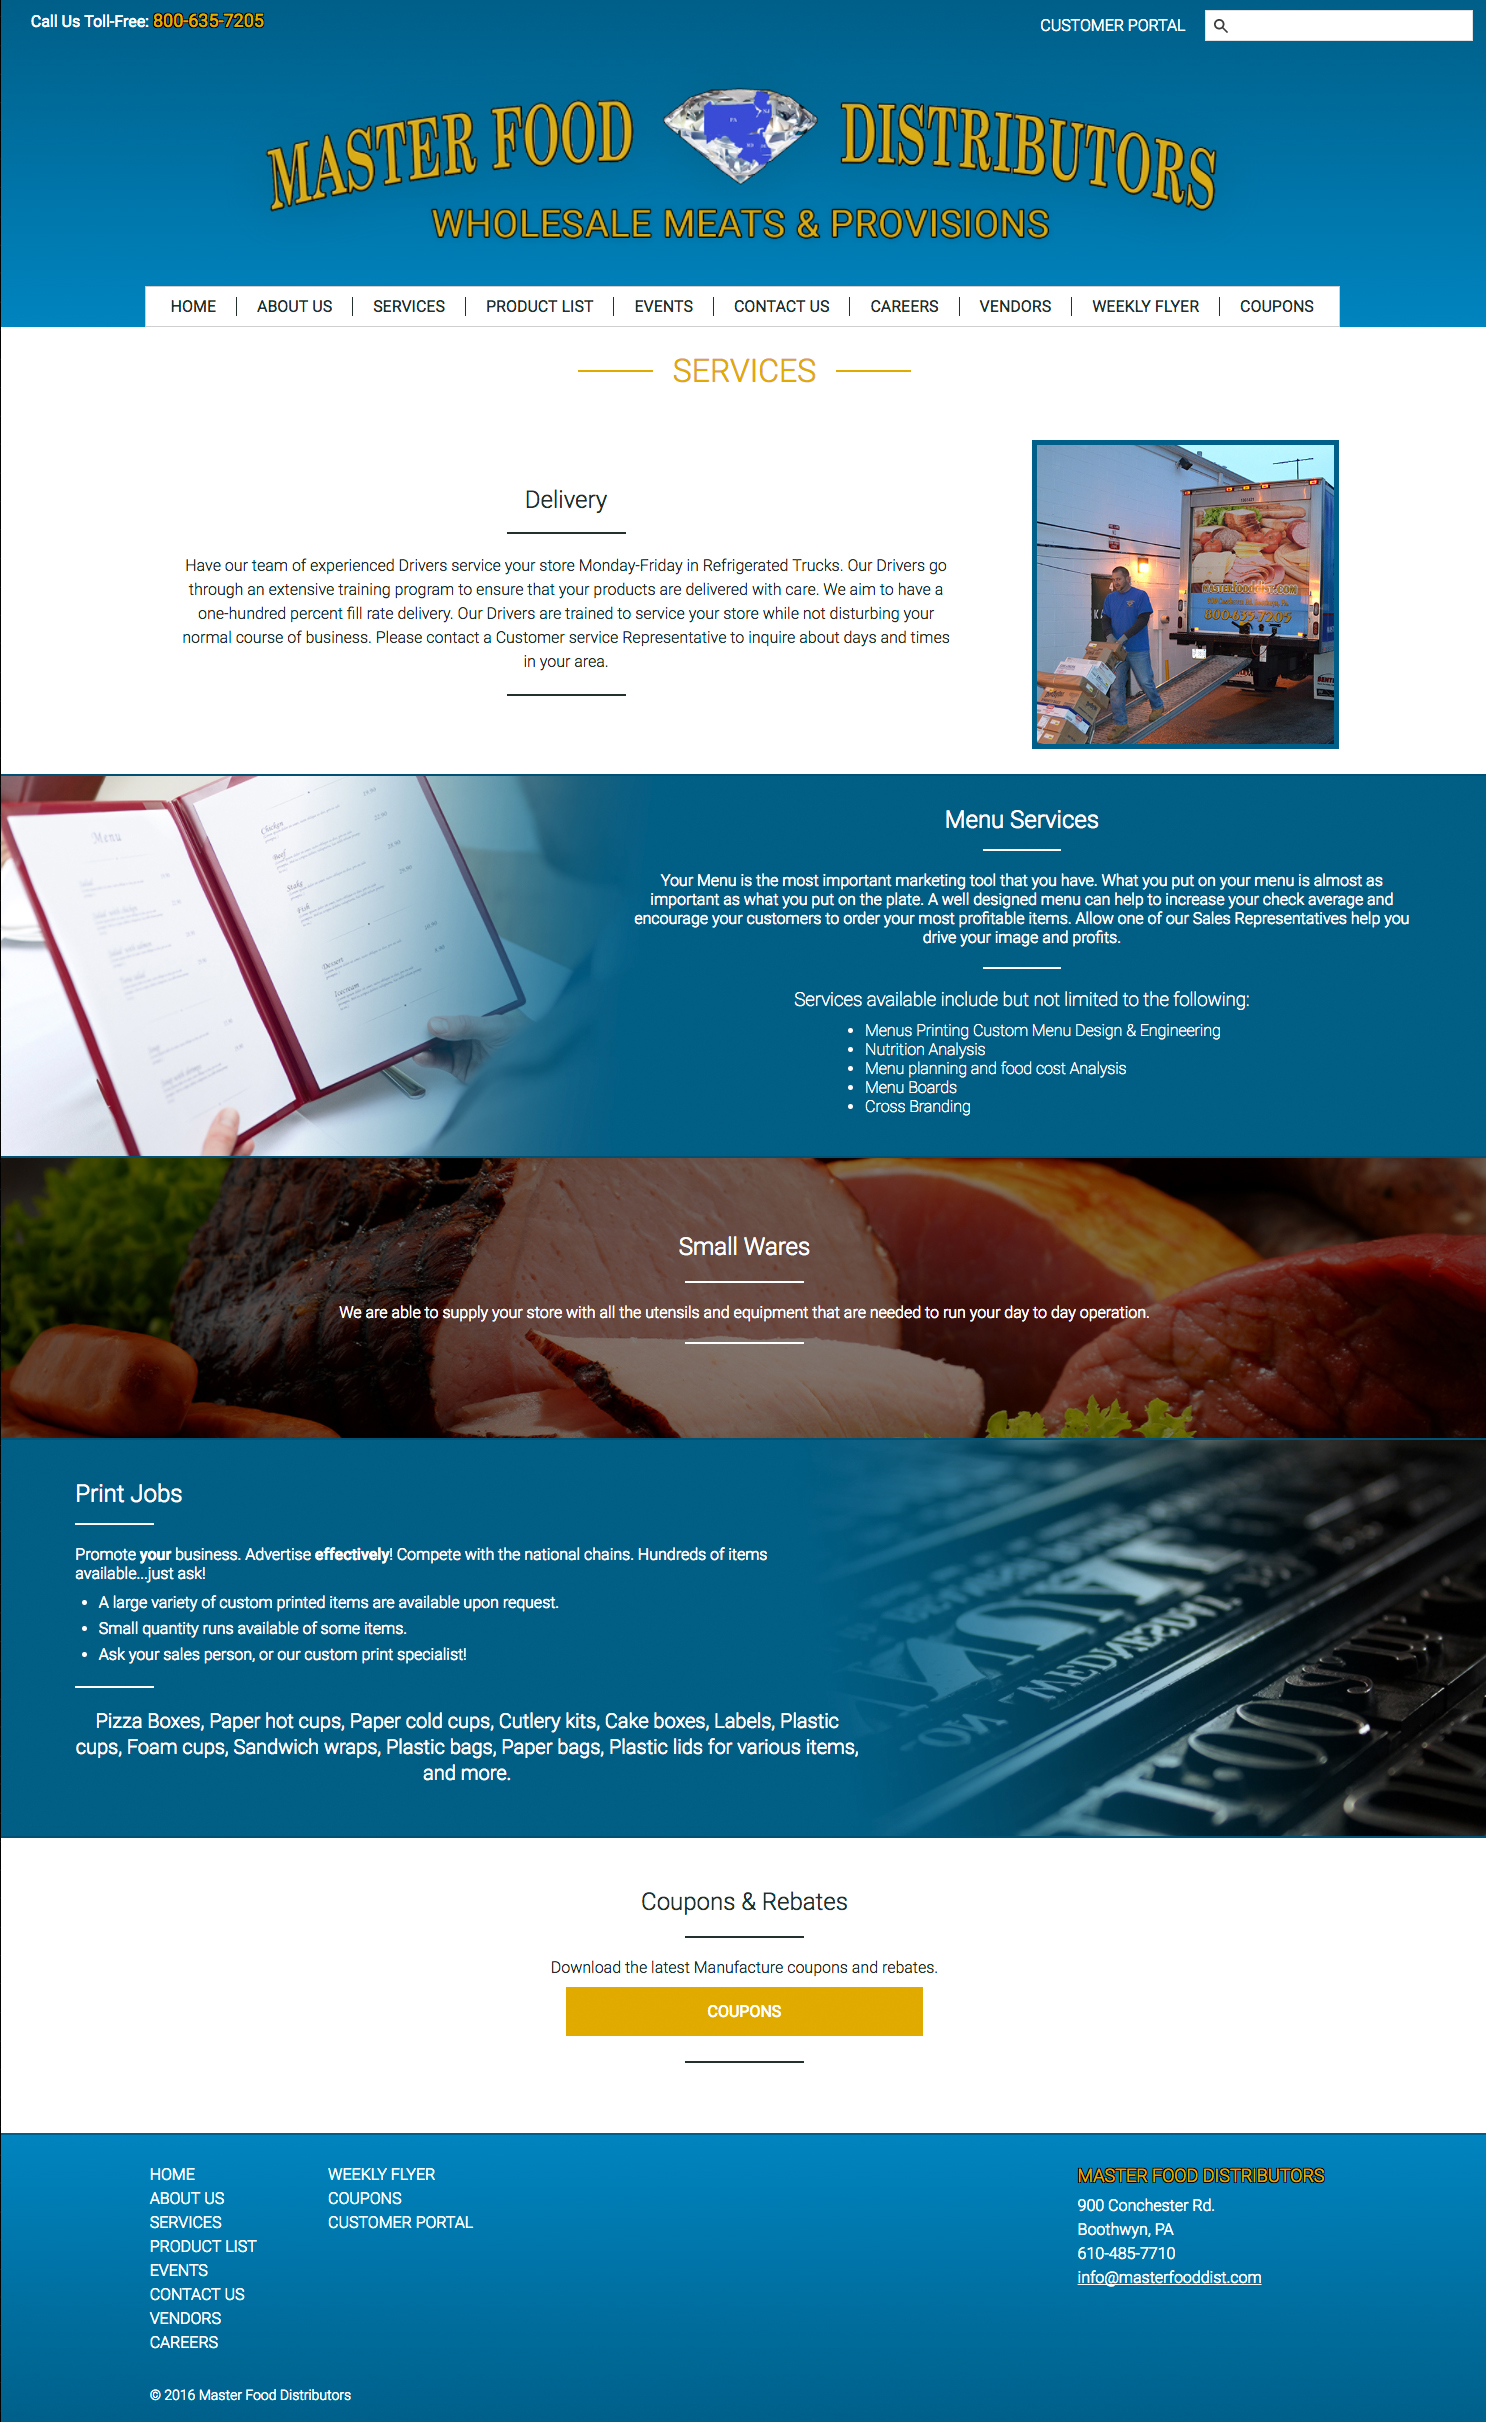 Responsive tablet services page for the Masterfood website